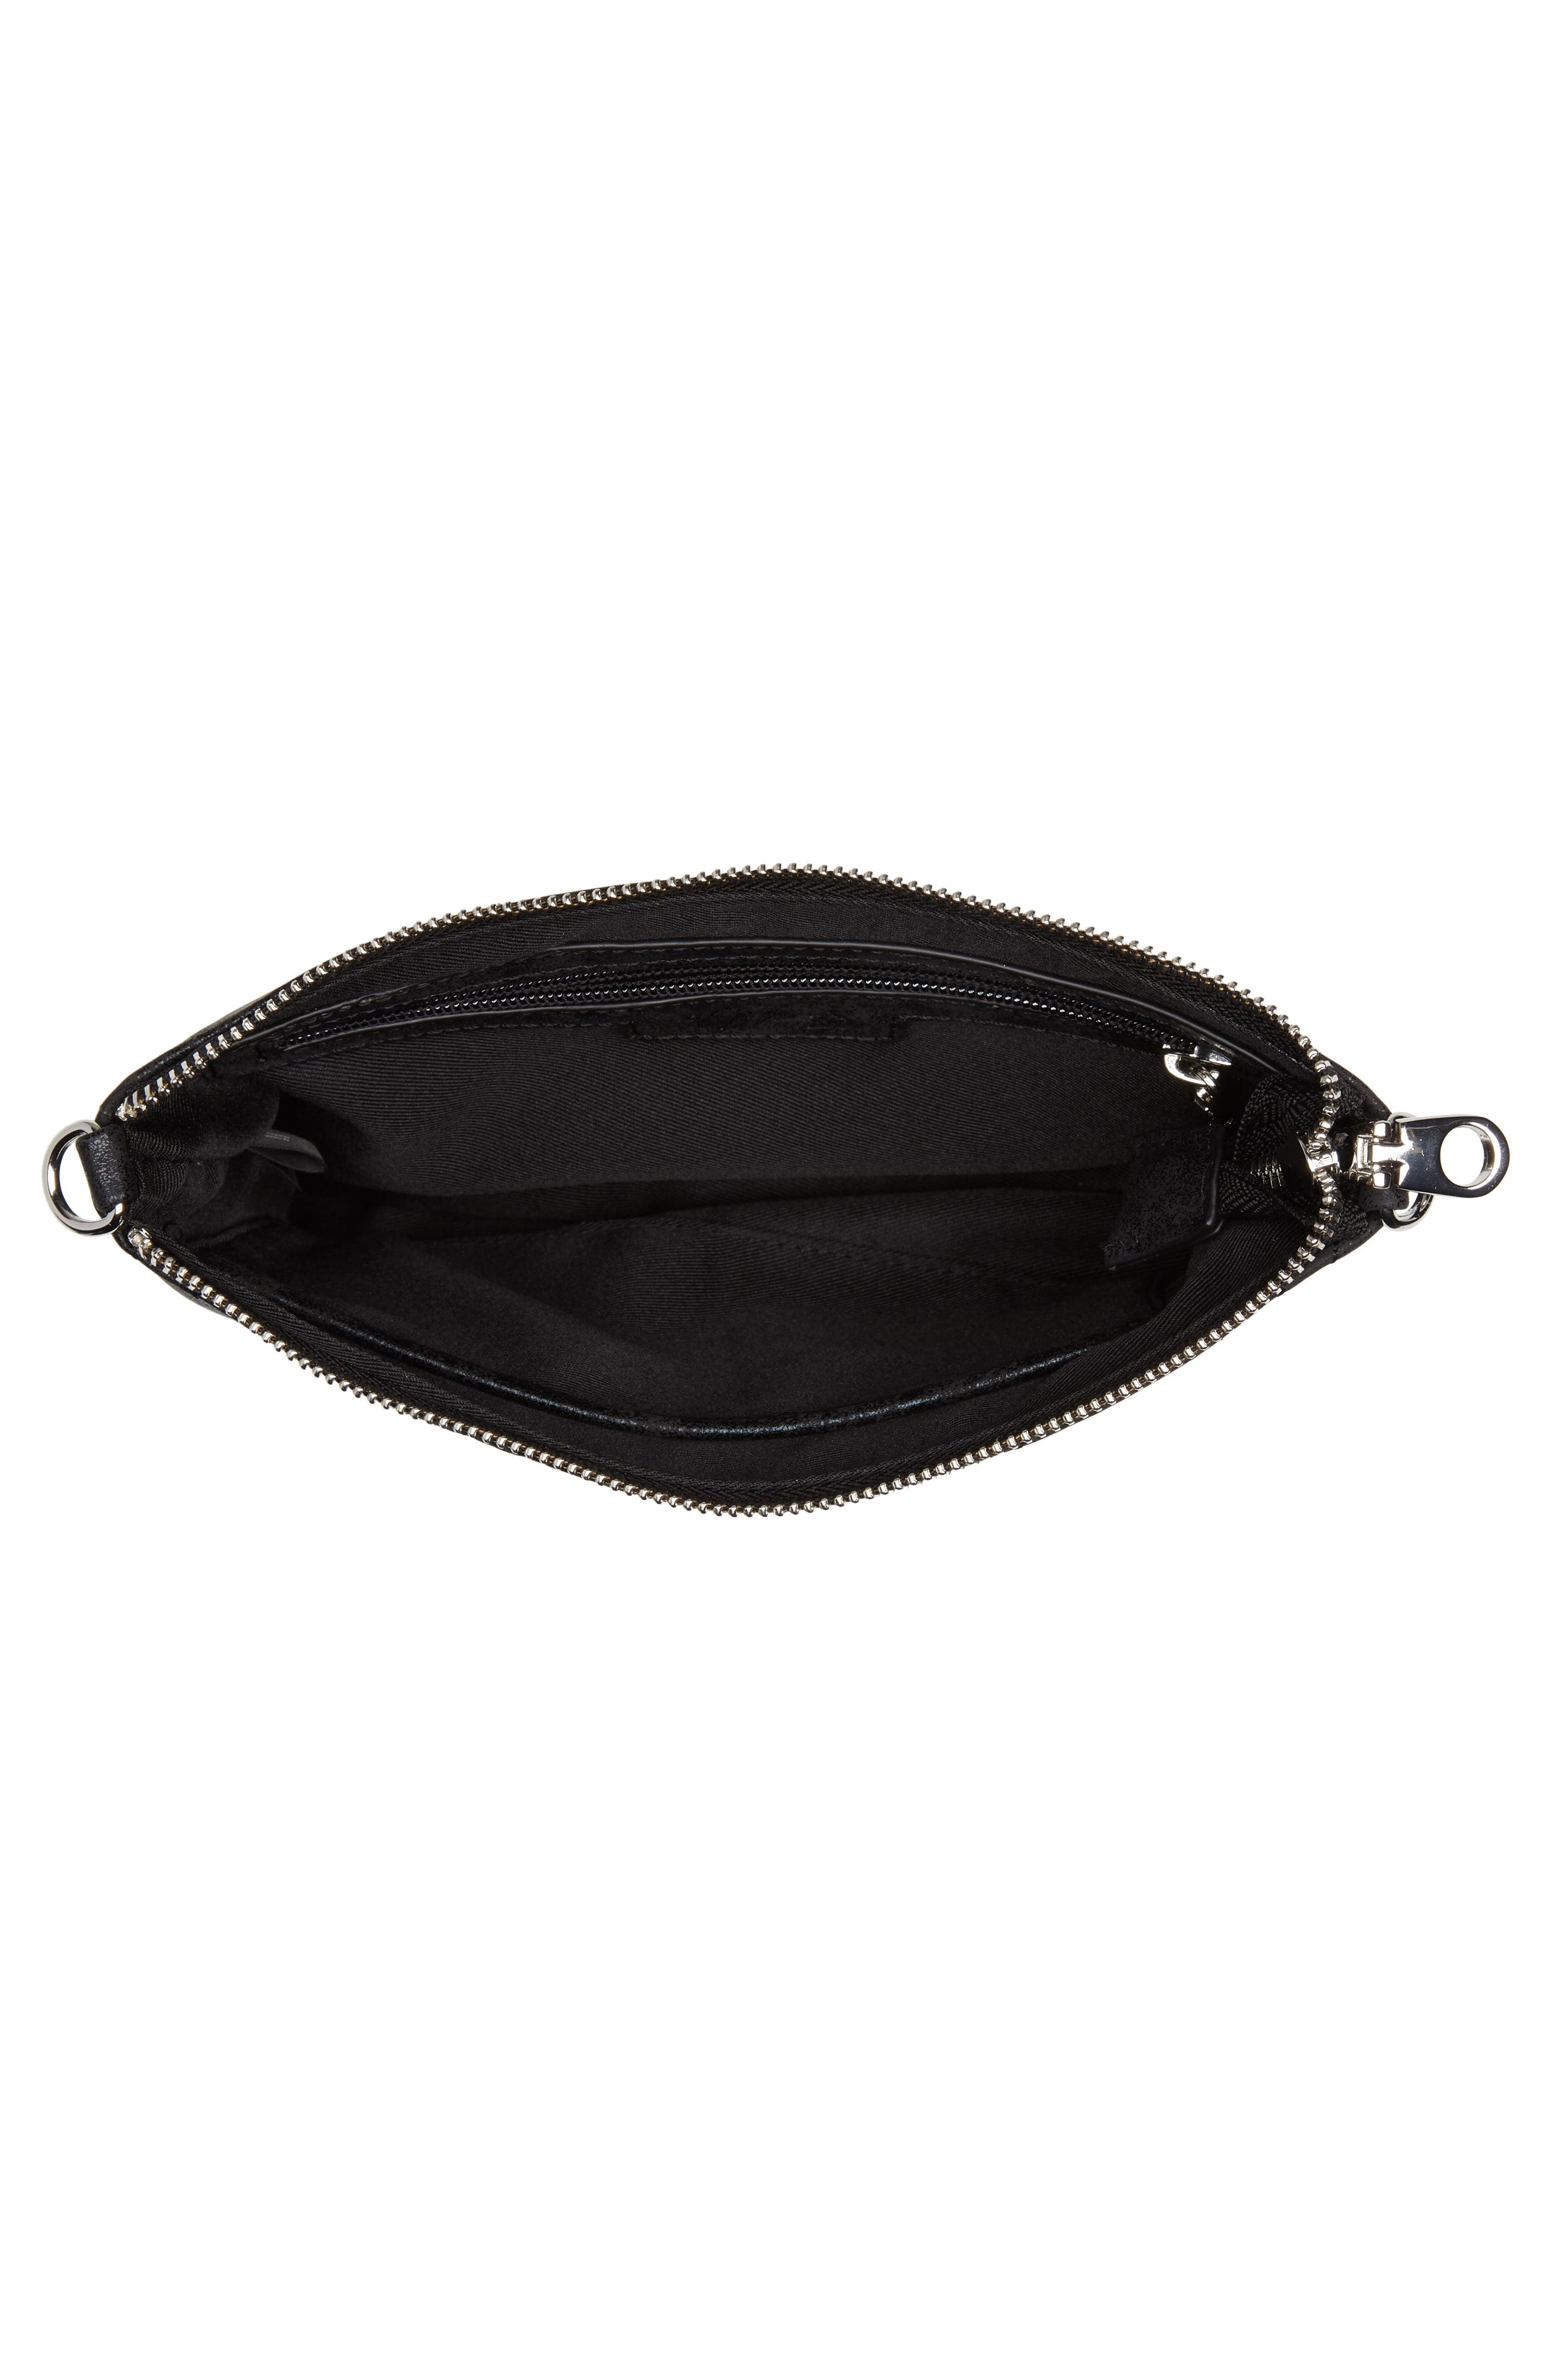 Astley Faux Leather Clutch,                             Alternate thumbnail 4, color,                             Black